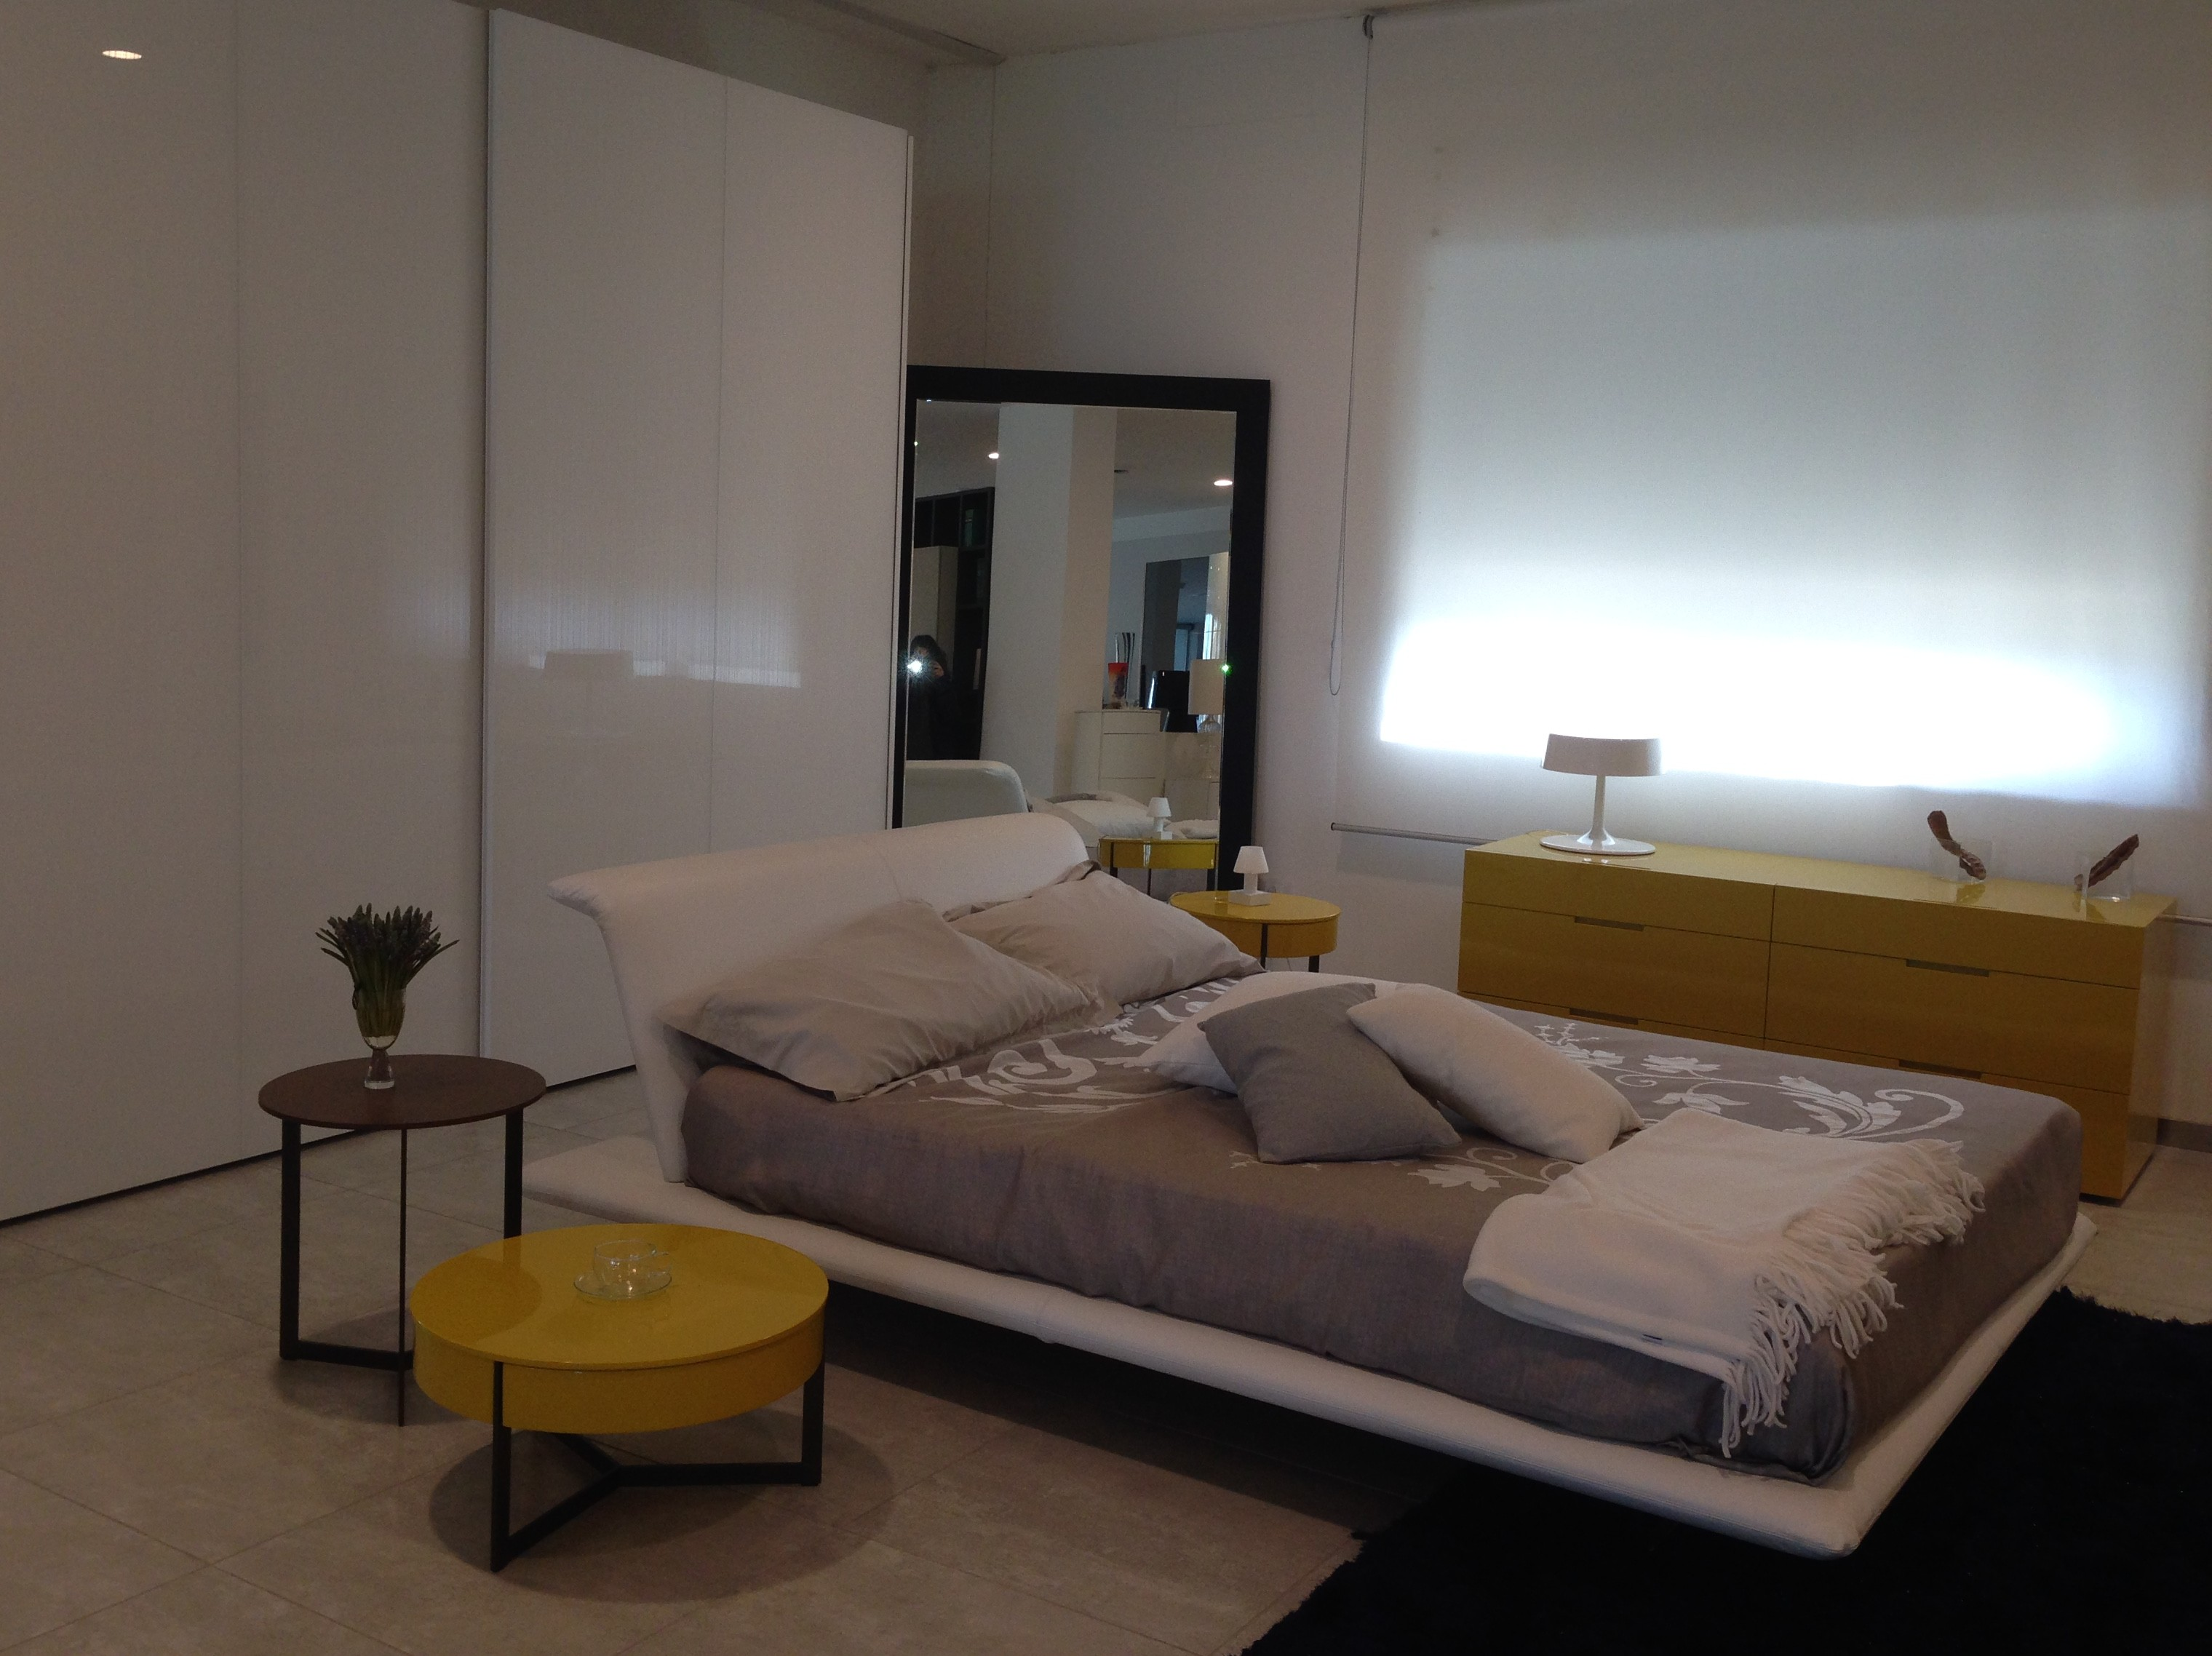 Living design di salvatore gulotta arredamento camere for Camere di design